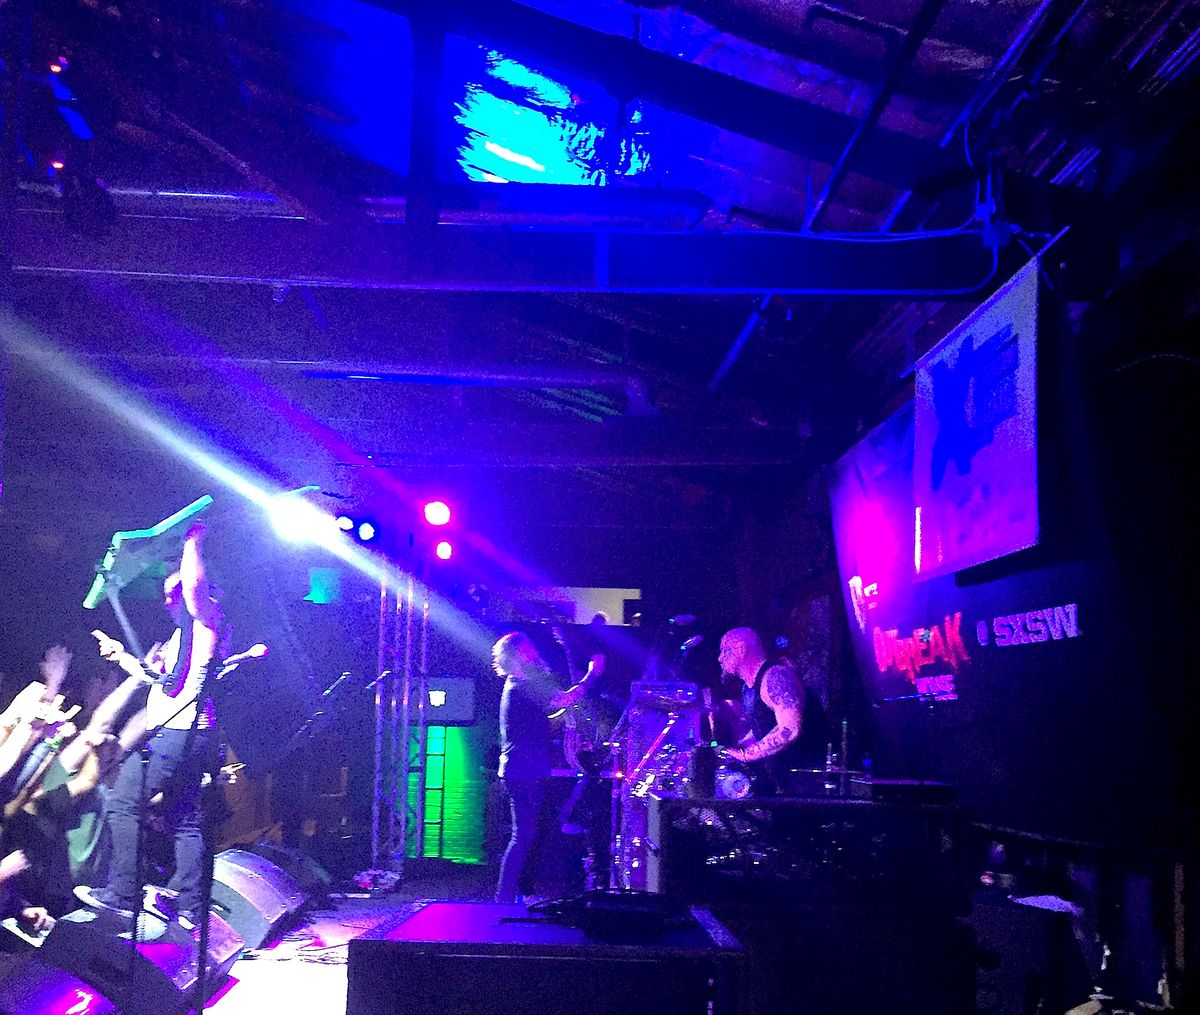 Rock Show at SXSW